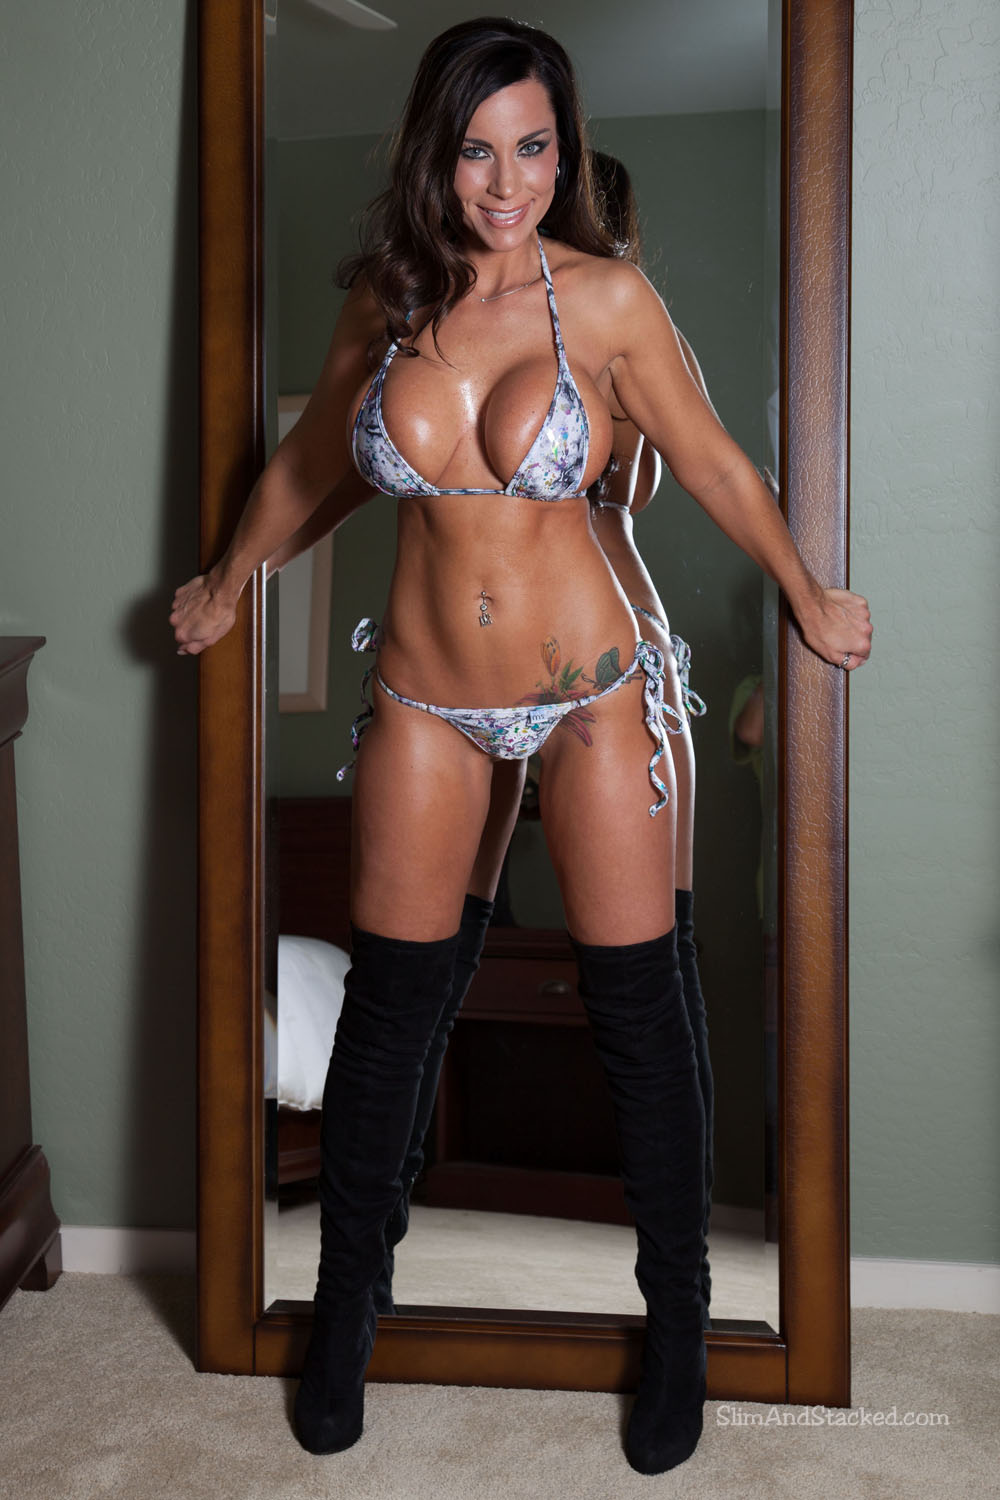 Laura Lee in a tiny bikini is an awe-inspiring sight.  Laura in bikini and boots drives the temperature even higher.  And when a mirror enters the mix, the results become incendiary!  Experience the heat yourself by owning Laura Lee - Mirror Bikini, featuring stunning 3000-pixel resolution.  Contact dezertimagez@gmail.com for set pricing.